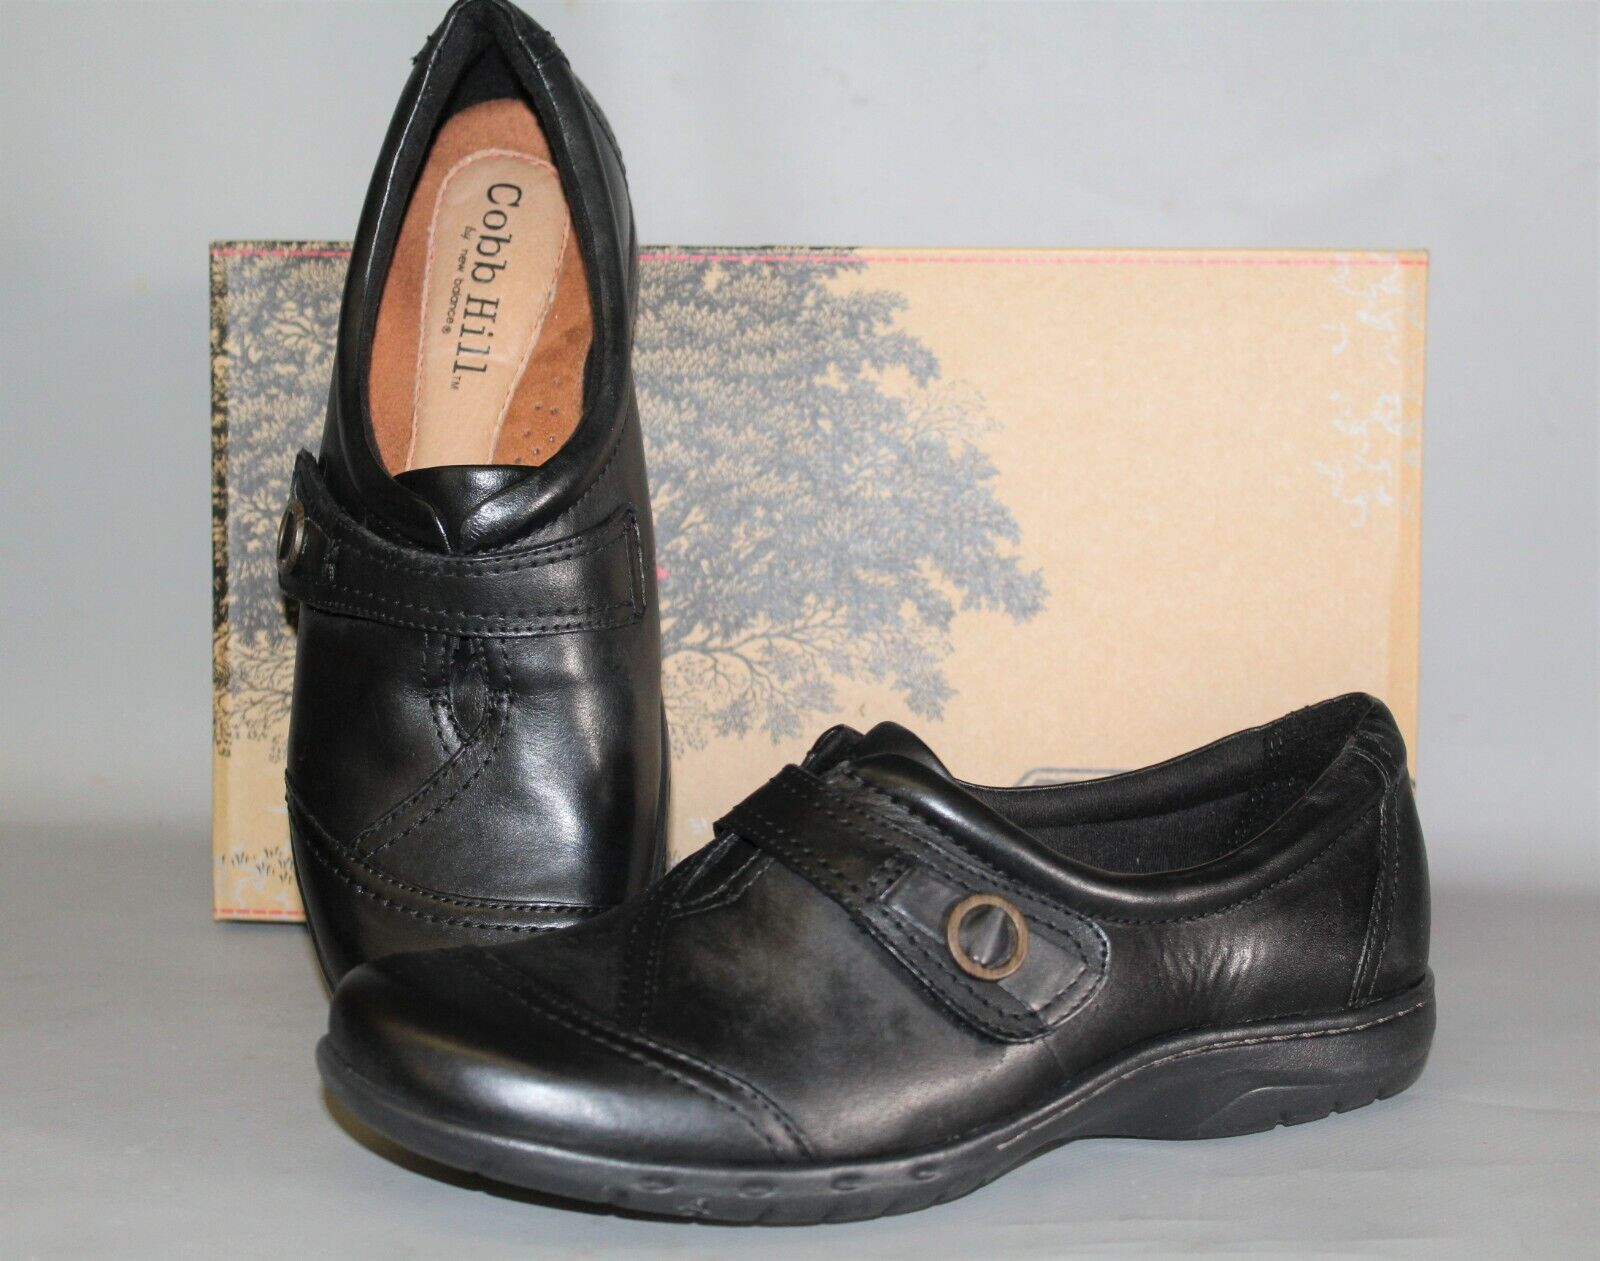 centro commerciale online integrato professionale NEW Donna  Cobb Hill Pamela Dimensione 9.5 9.5 9.5 Medium nero Leather Casual Shoe  varie dimensioni